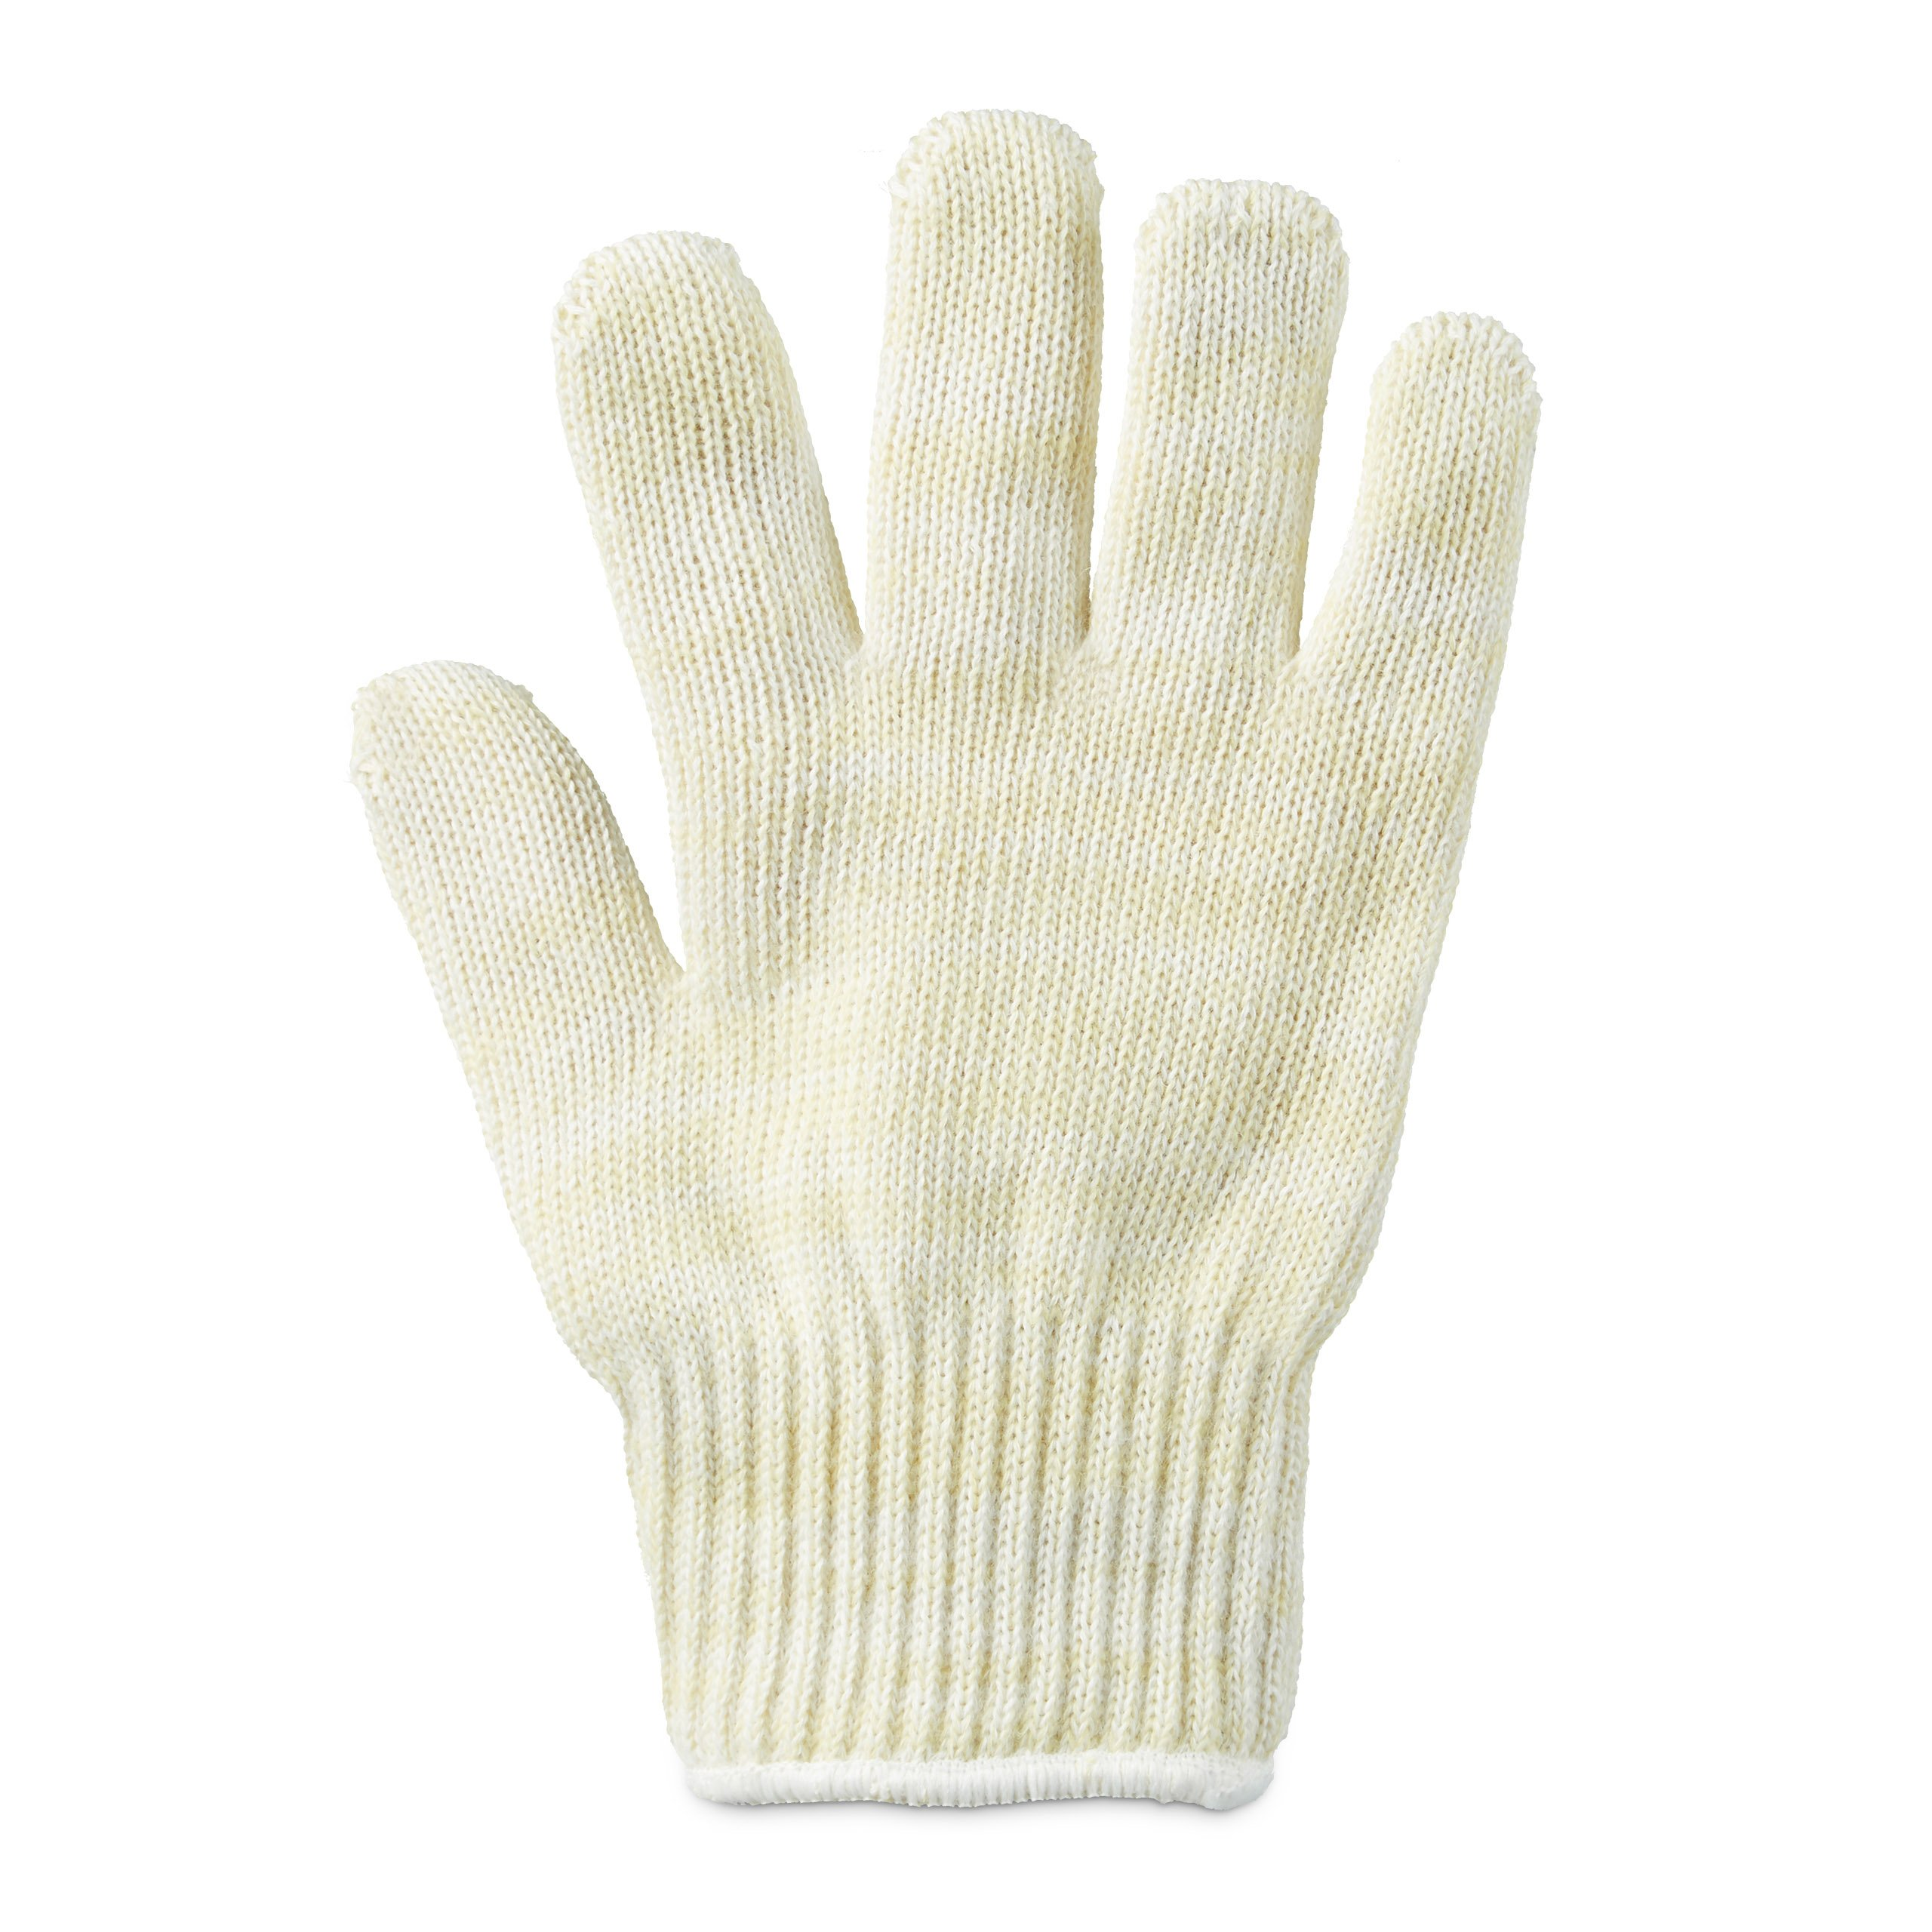 Relaxdays Heat Resistant Glove for the Grill & Oven,Fireproof Aramid Fiber, One-Size-Fits-All, for Left and Right Hand, Beige